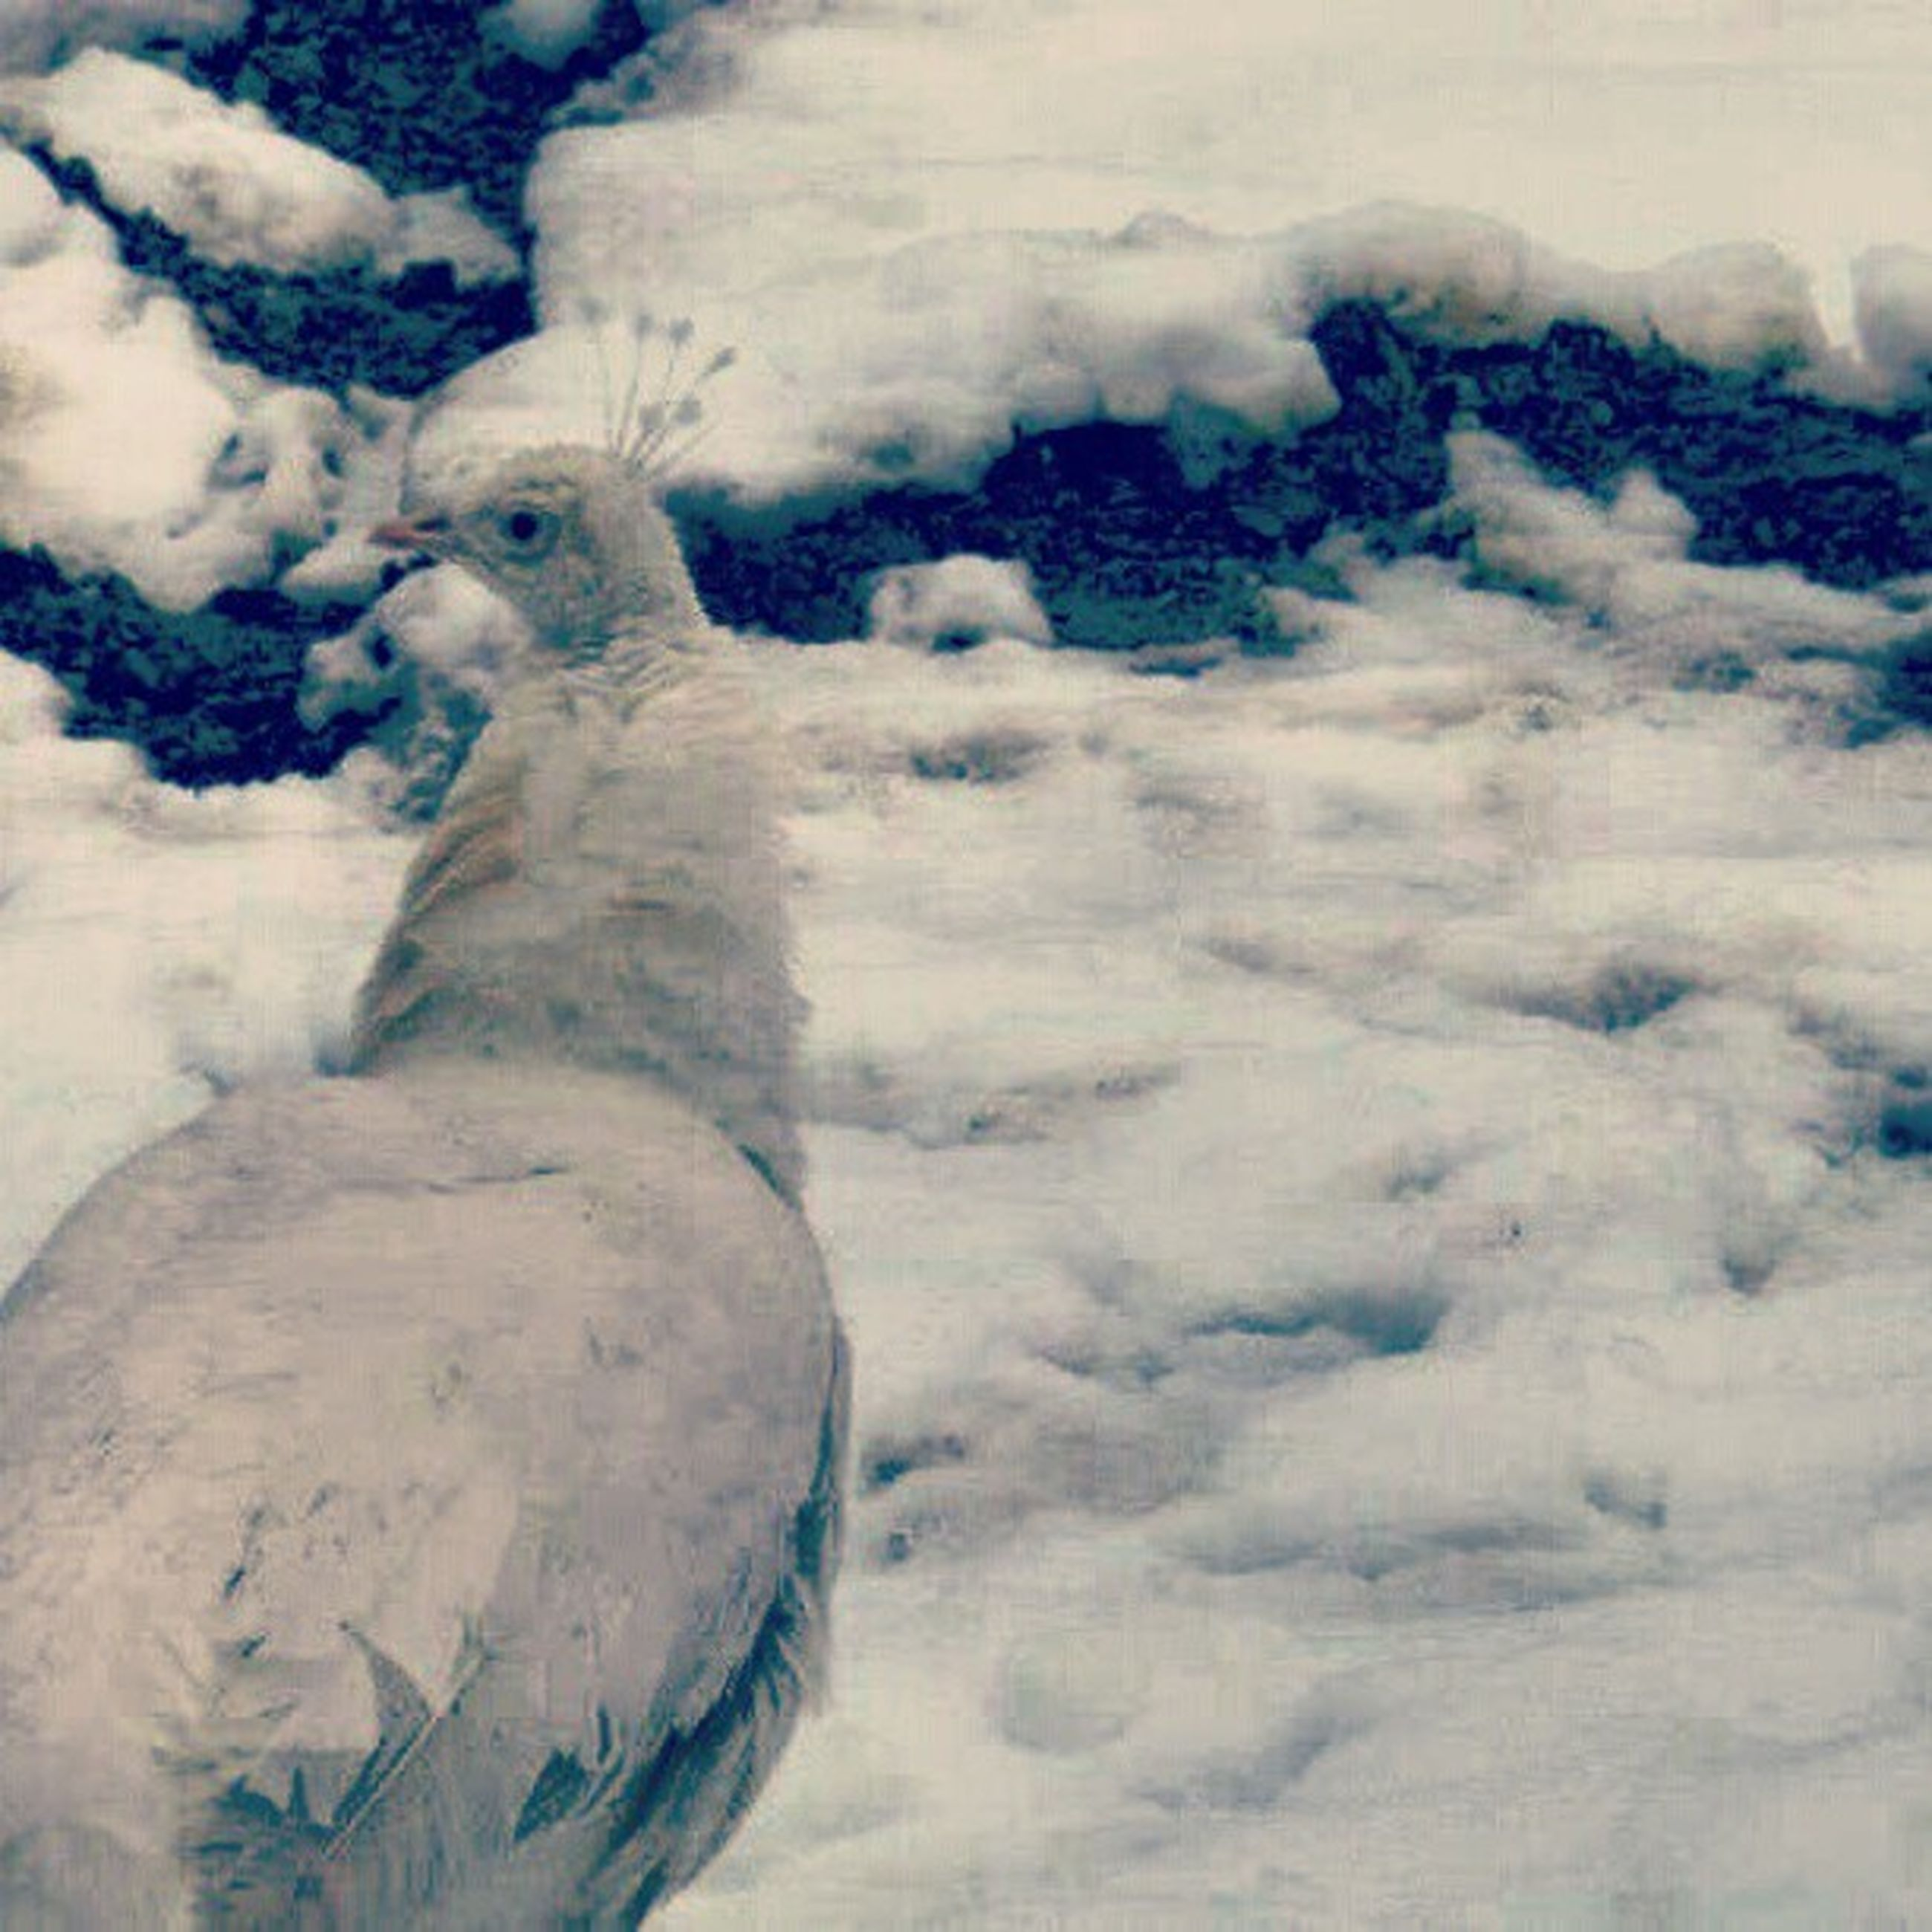 winter, snow, cold temperature, weather, white color, covering, frozen, animal themes, season, nature, covered, high angle view, no people, day, outdoors, field, animal representation, close-up, one animal, art and craft